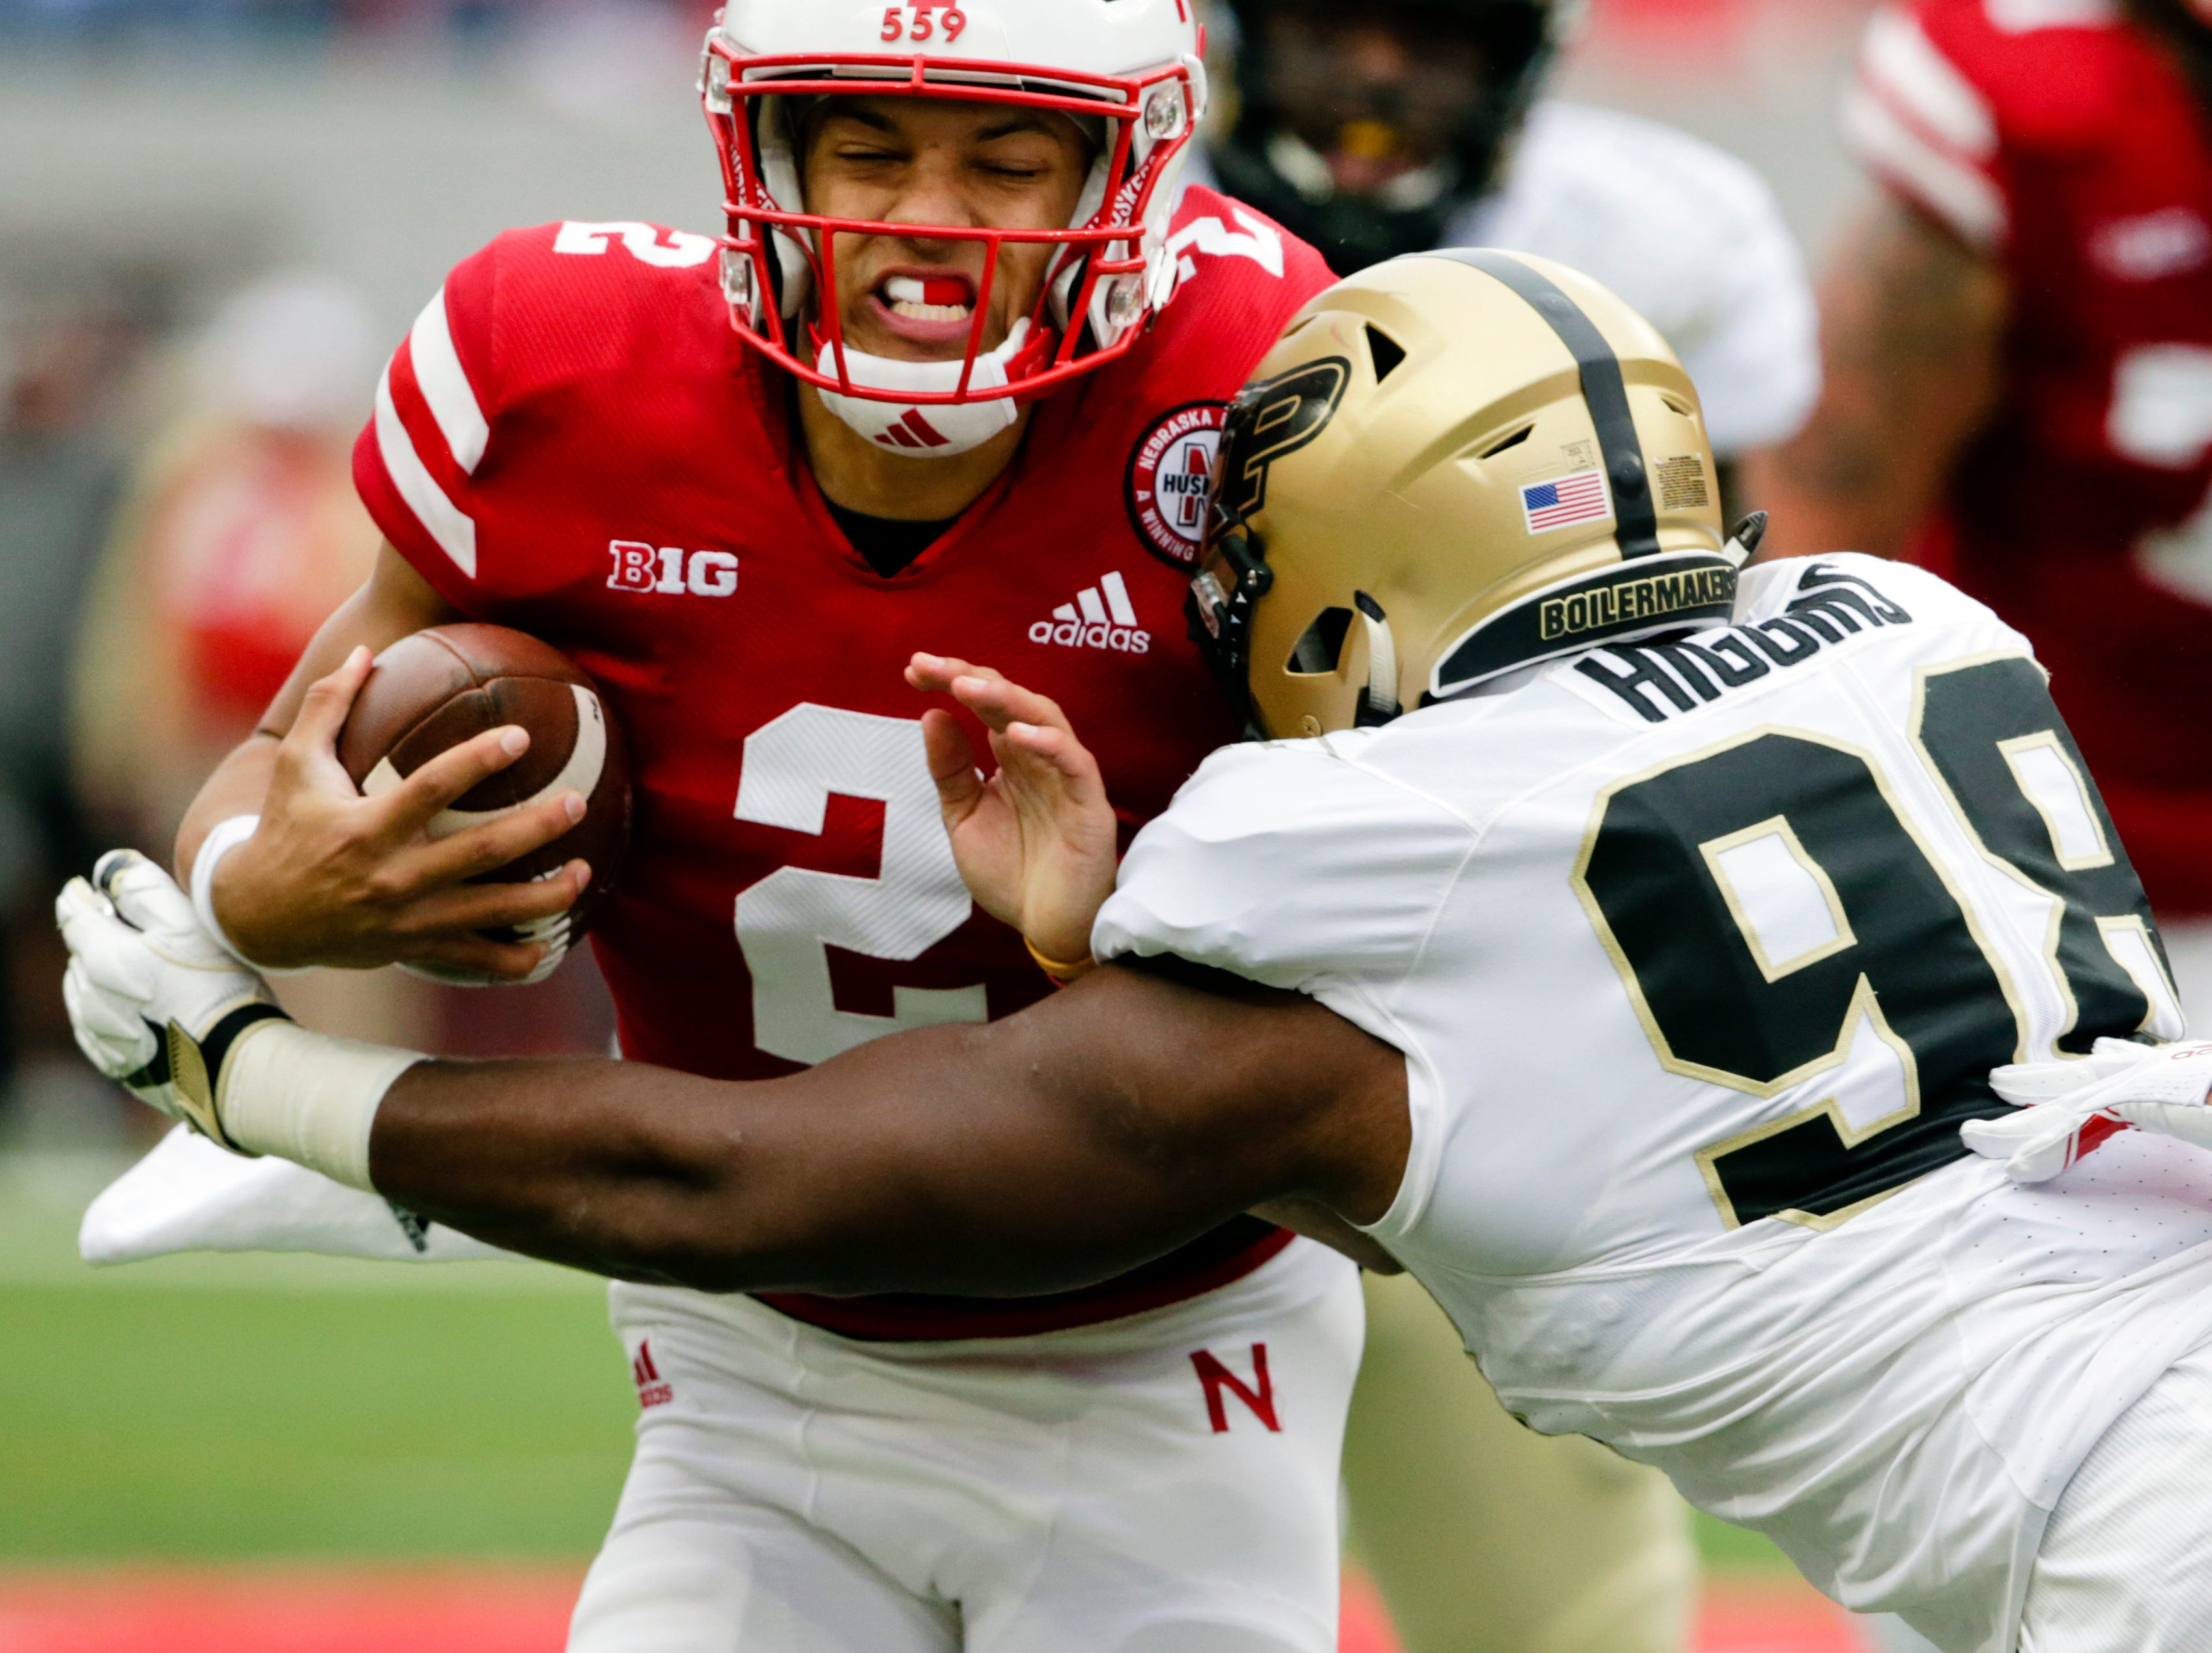 Purdue defensive end Kai Higgins (98) tackles Nebraska quarterback Adrian Martinez (2) during the first half of an NCAA college football game in Lincoln, Neb., Saturday, Sept. 29, 2018. (AP Photo/Nati Harnik)